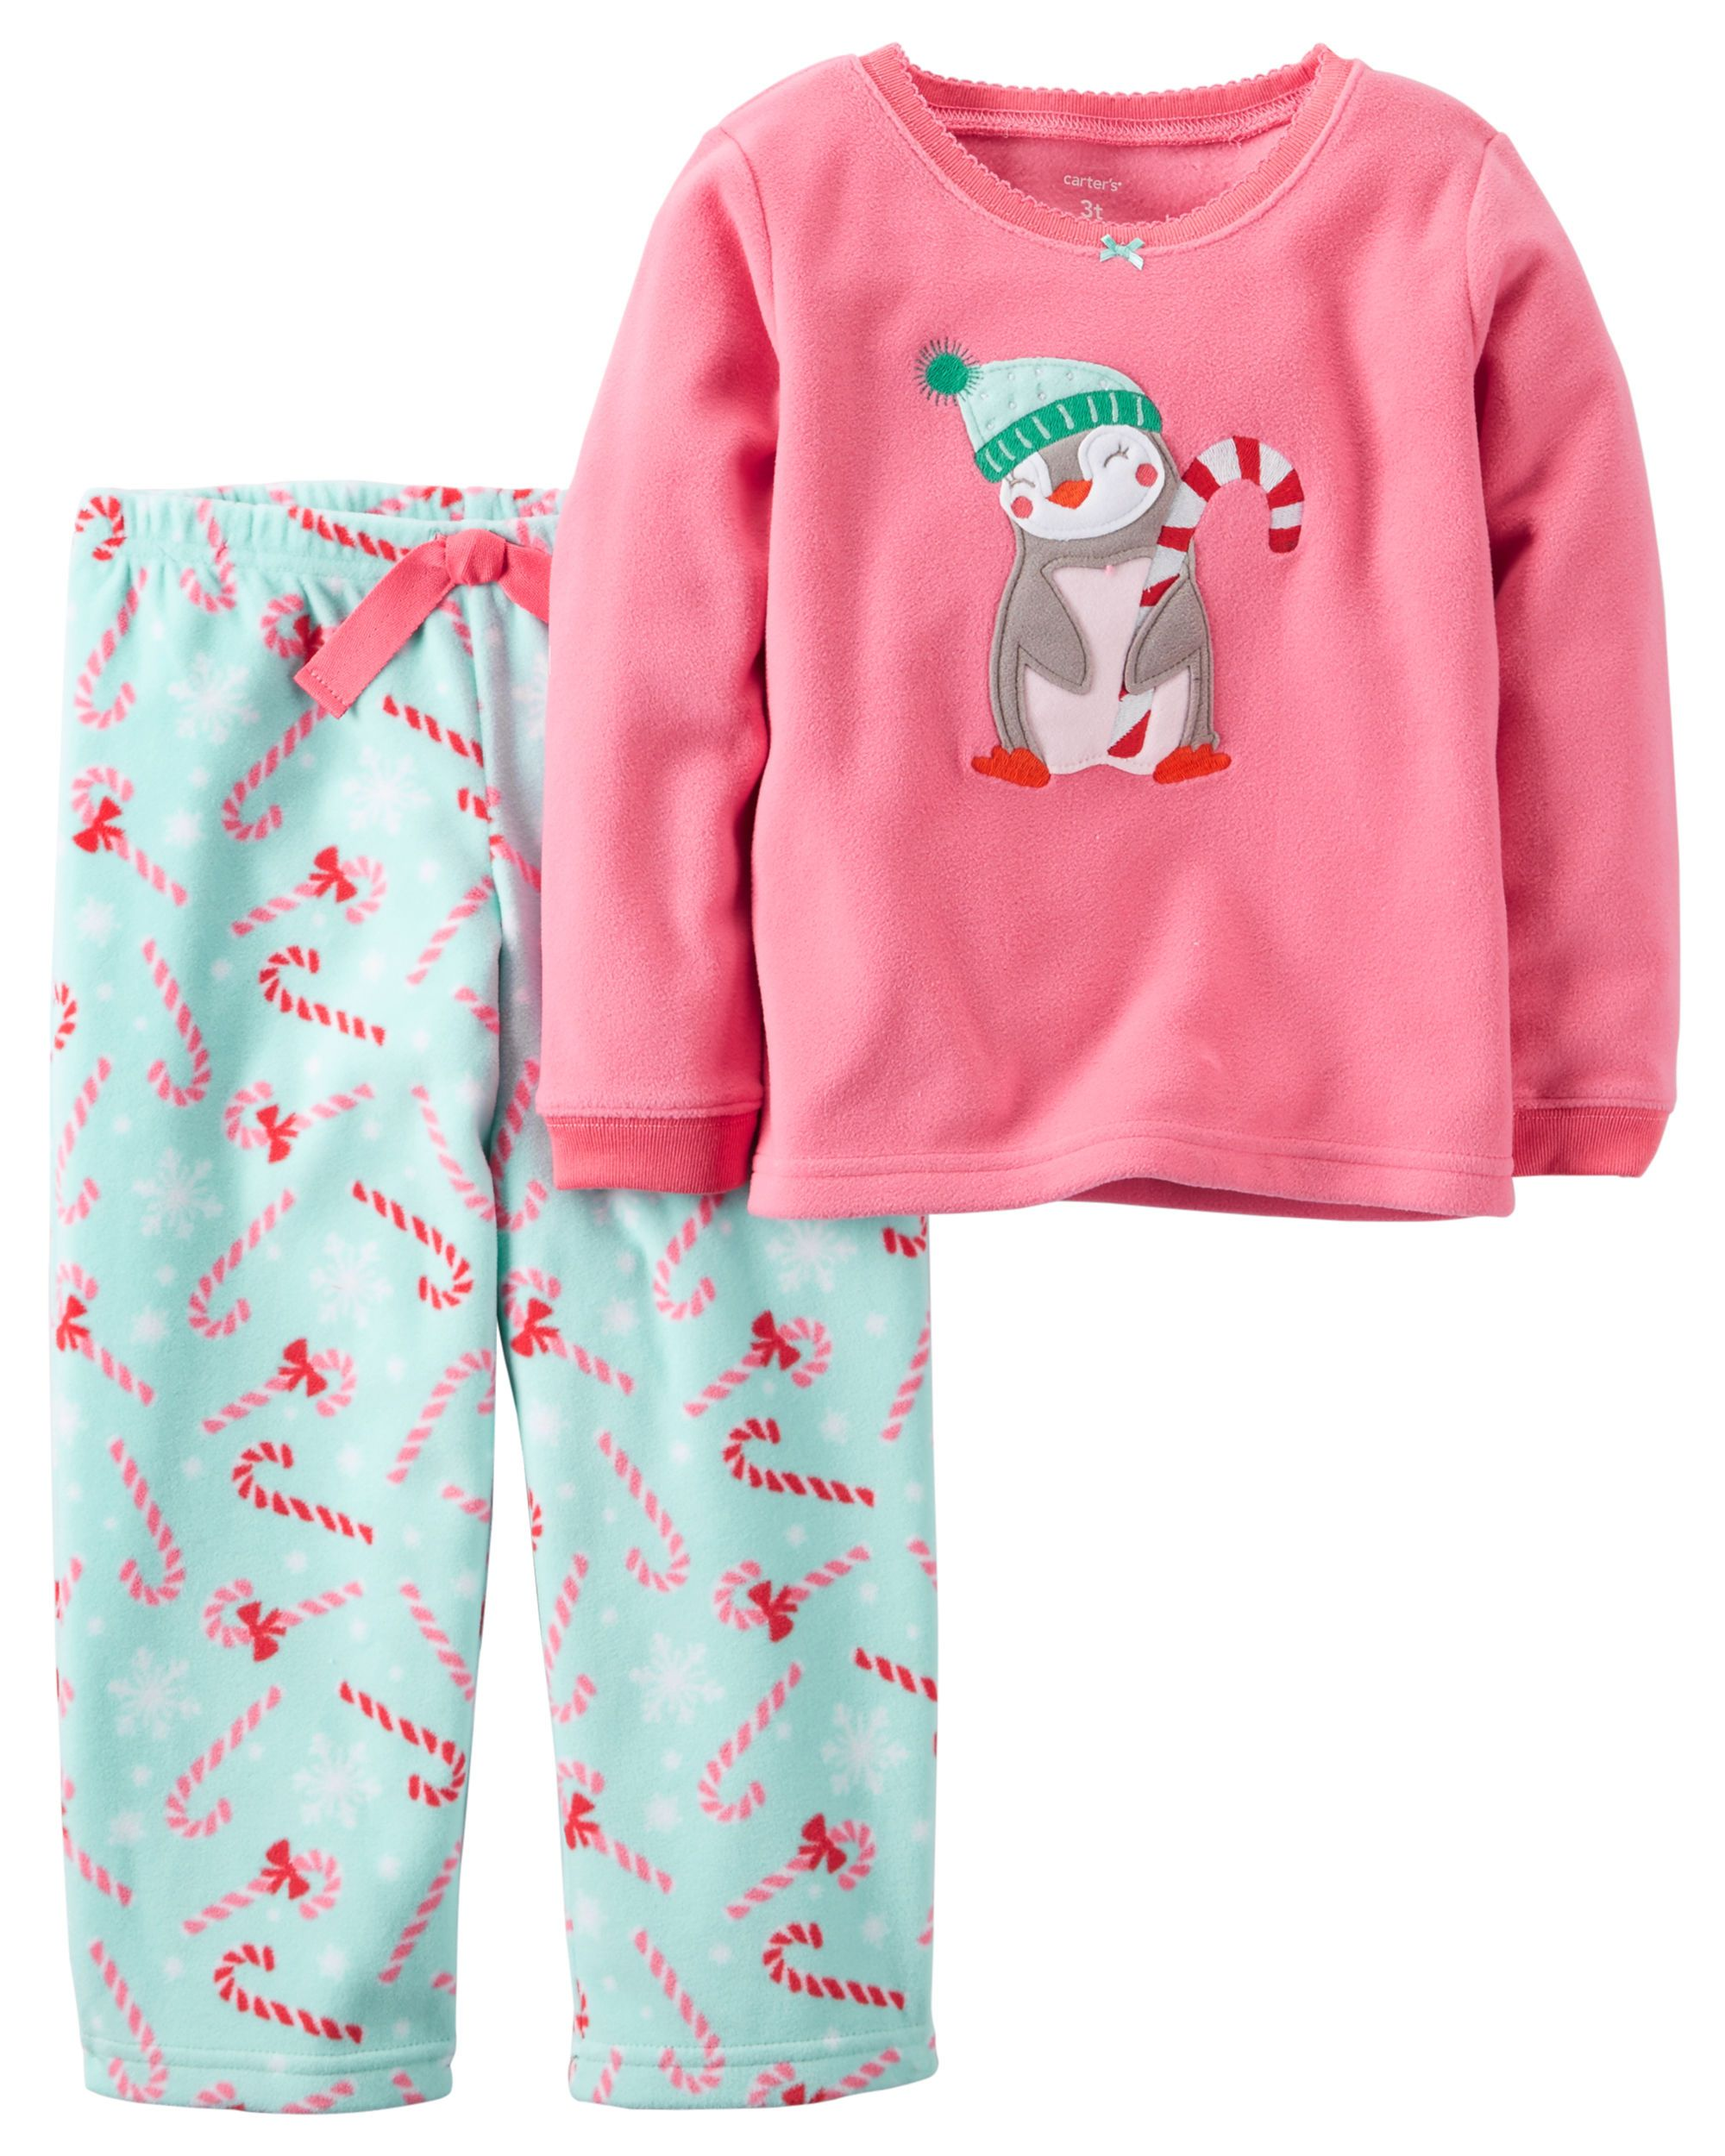 Shop for fleece christmas pajamas online at Target. Free shipping on purchases over $35 and save 5% every day with your Target REDcard.